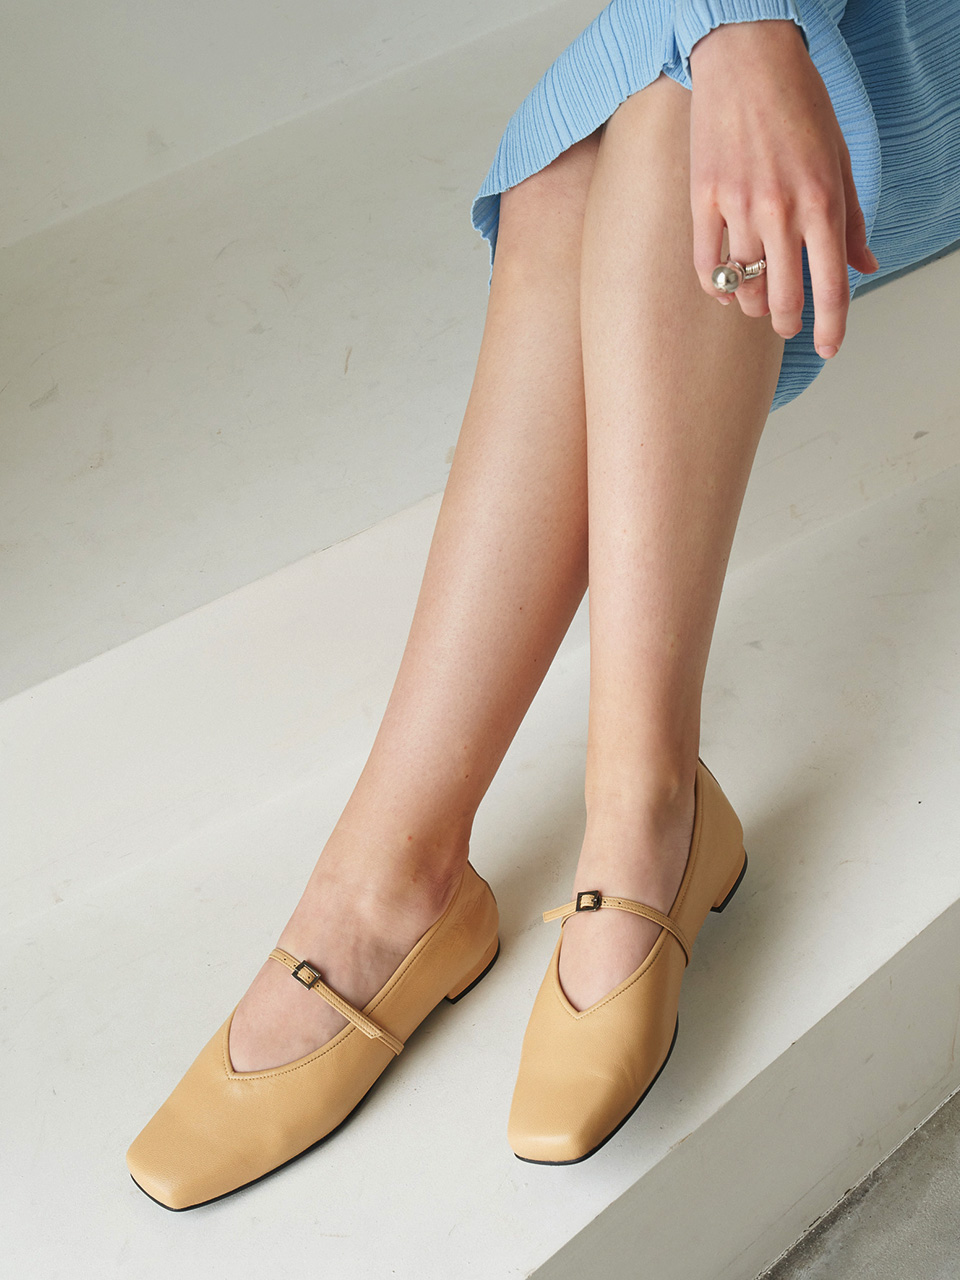 Mrc071 3Way Strap Flat Shoes (Butter Yellow)